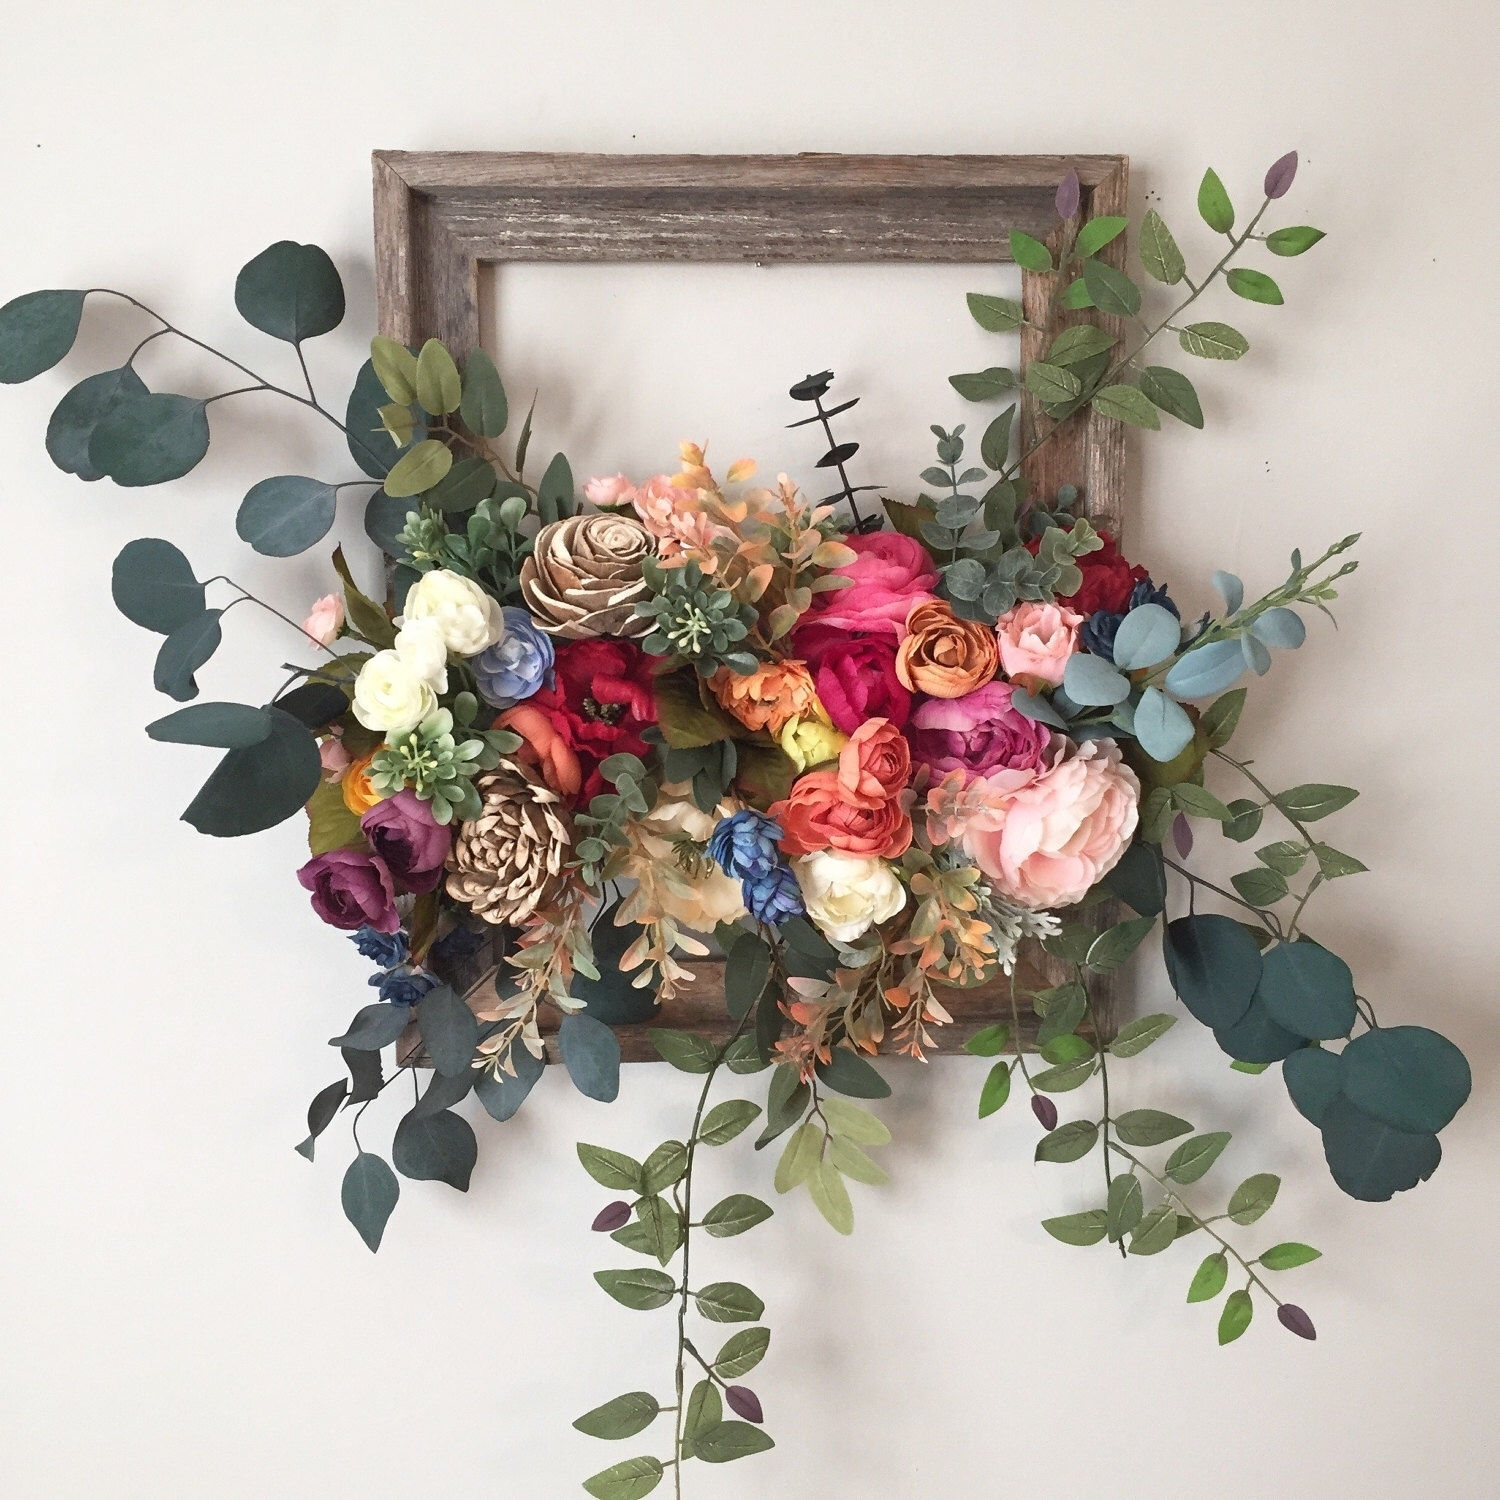 Unique Wall Hanging Flower Design | Wall Decorations intended for 2018 Floral Wall Art